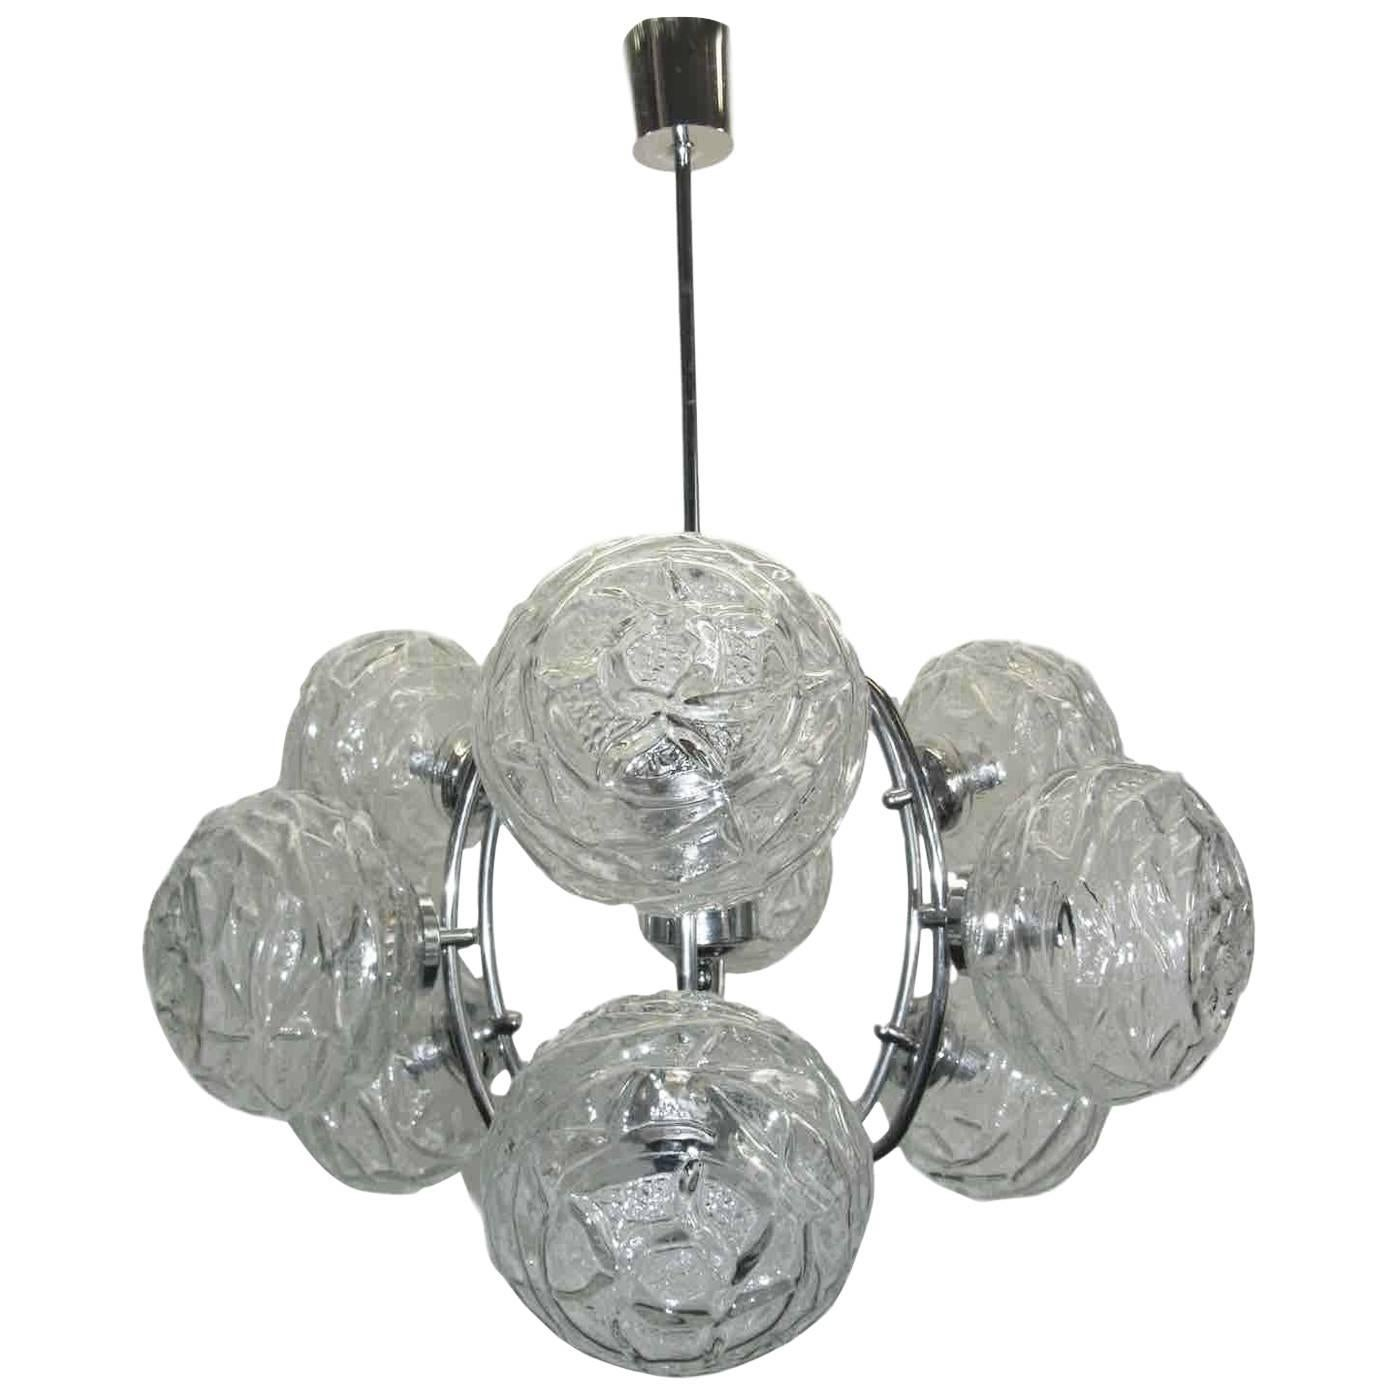 German Mid-Century Modern Polished Chrome and Glass Ball Chandelier